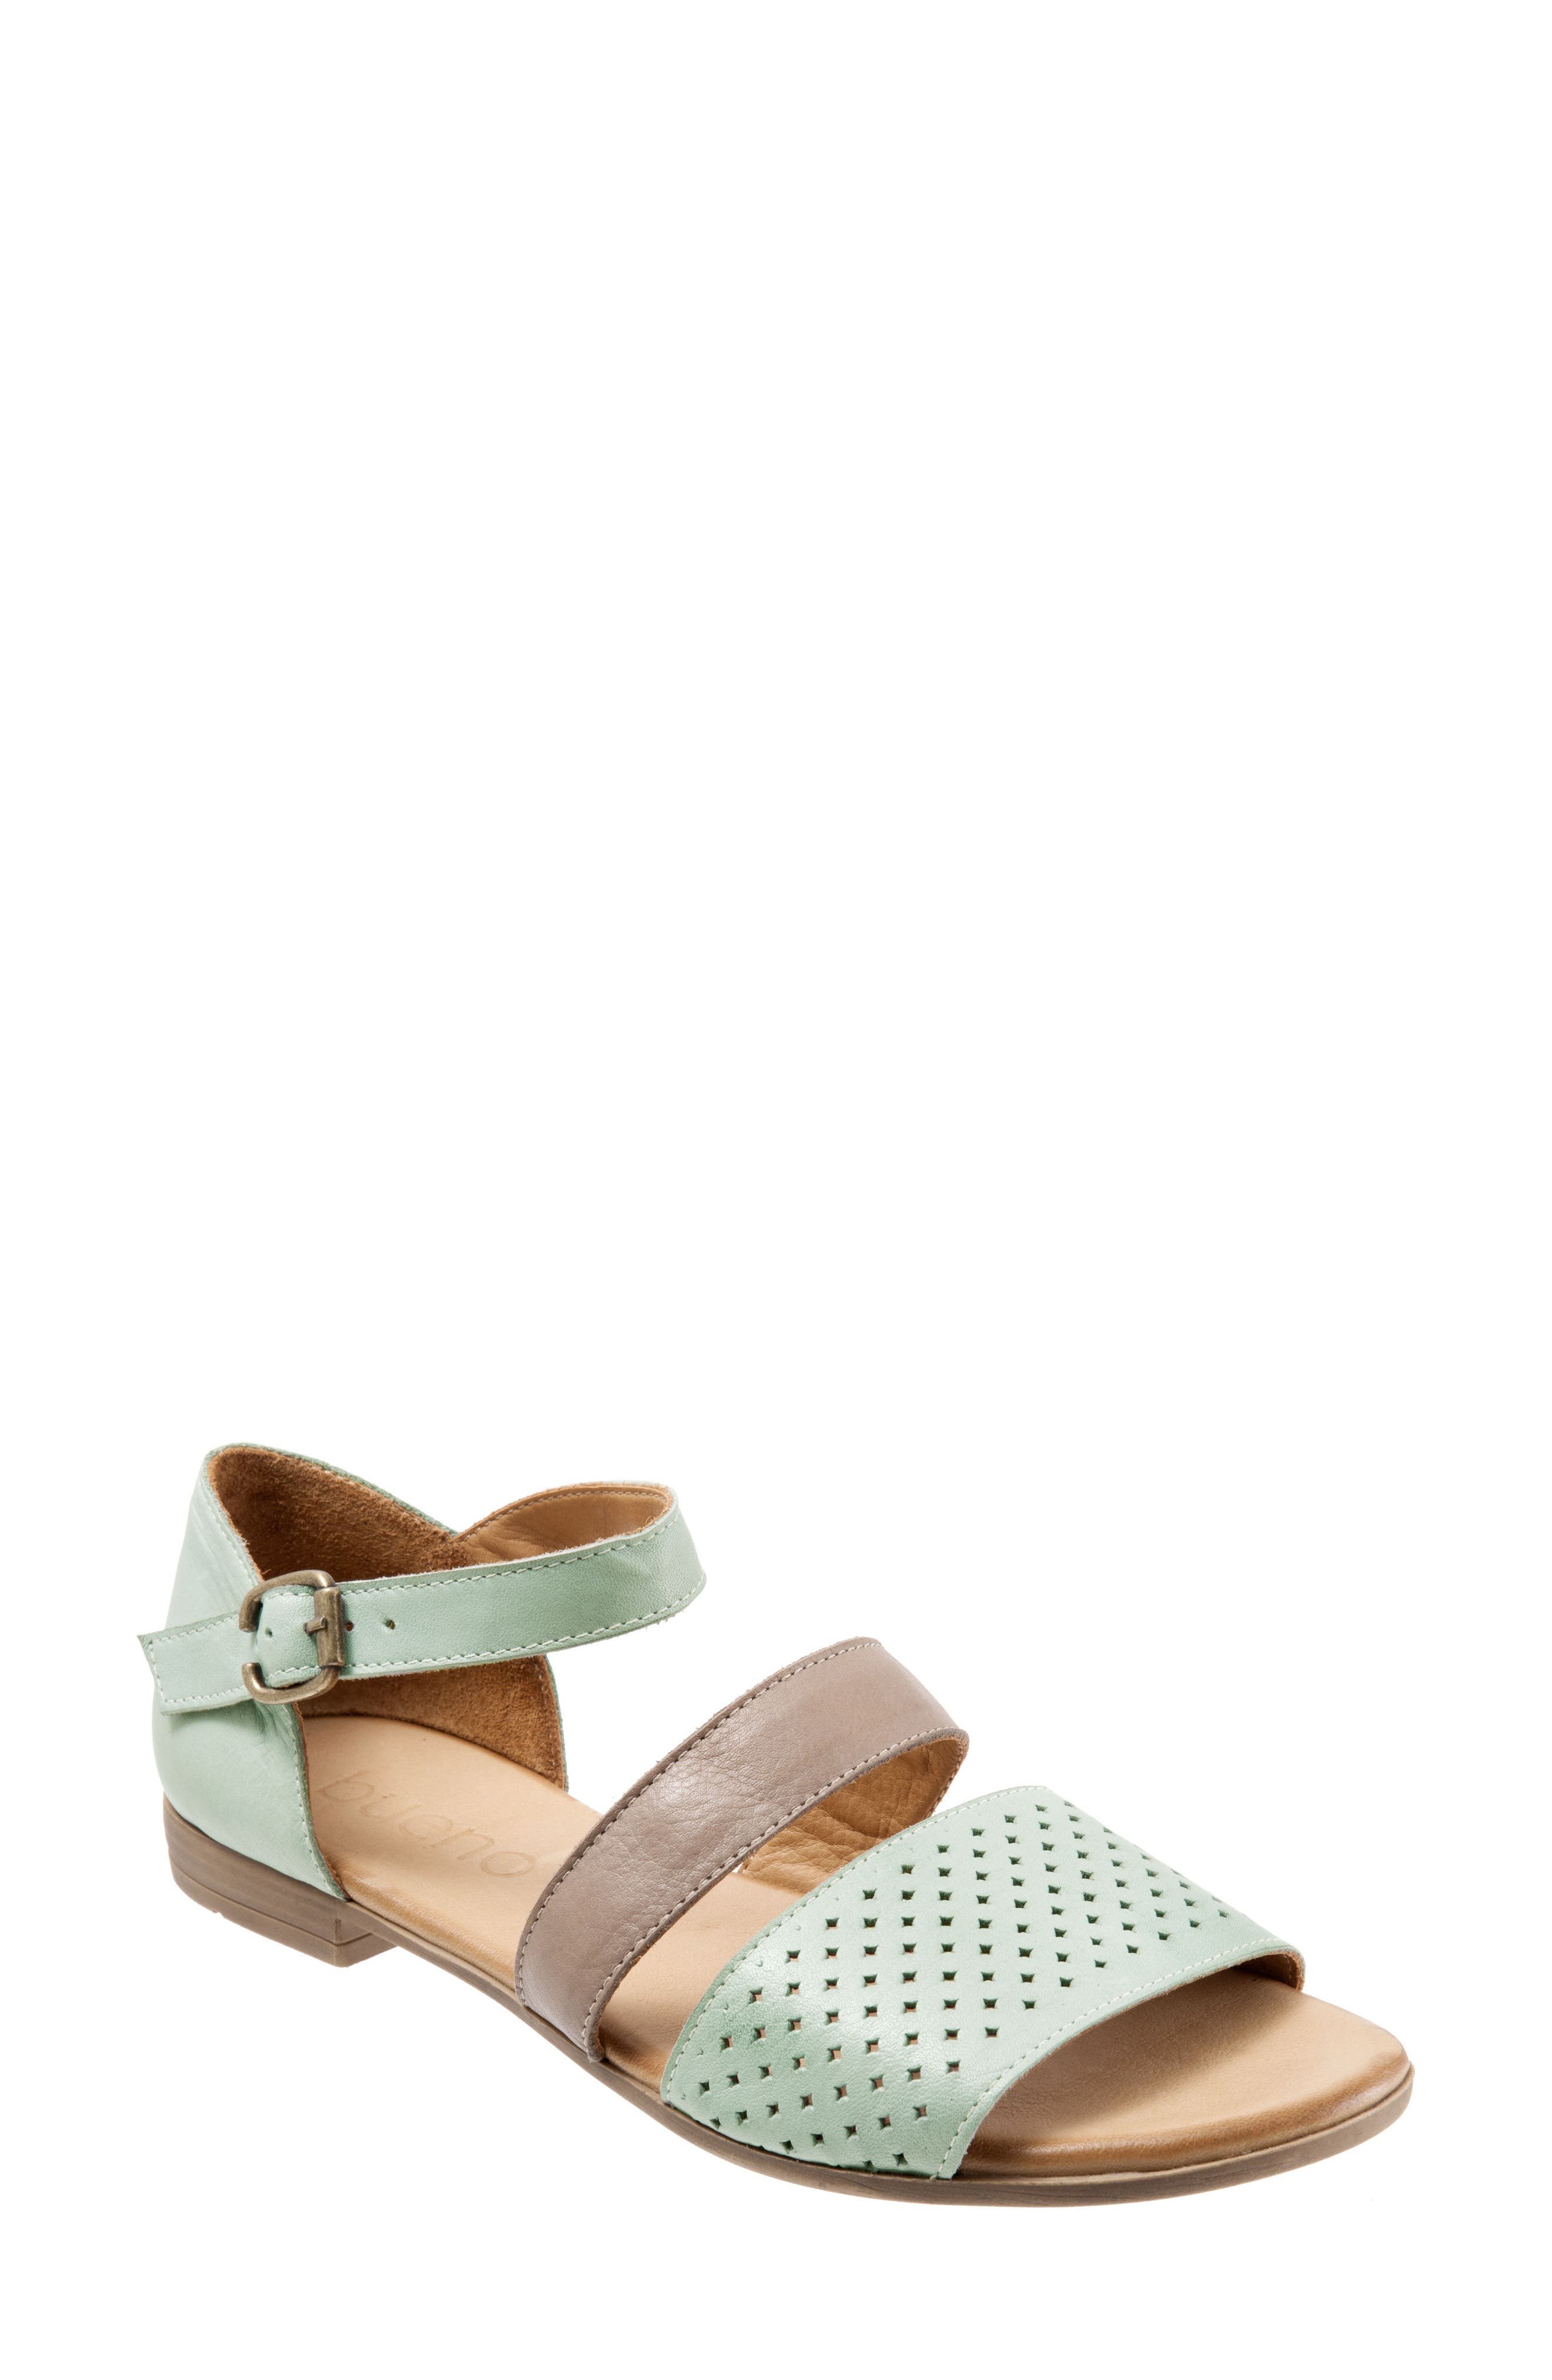 Bueno Janet Perforated Flat Sandal - Green